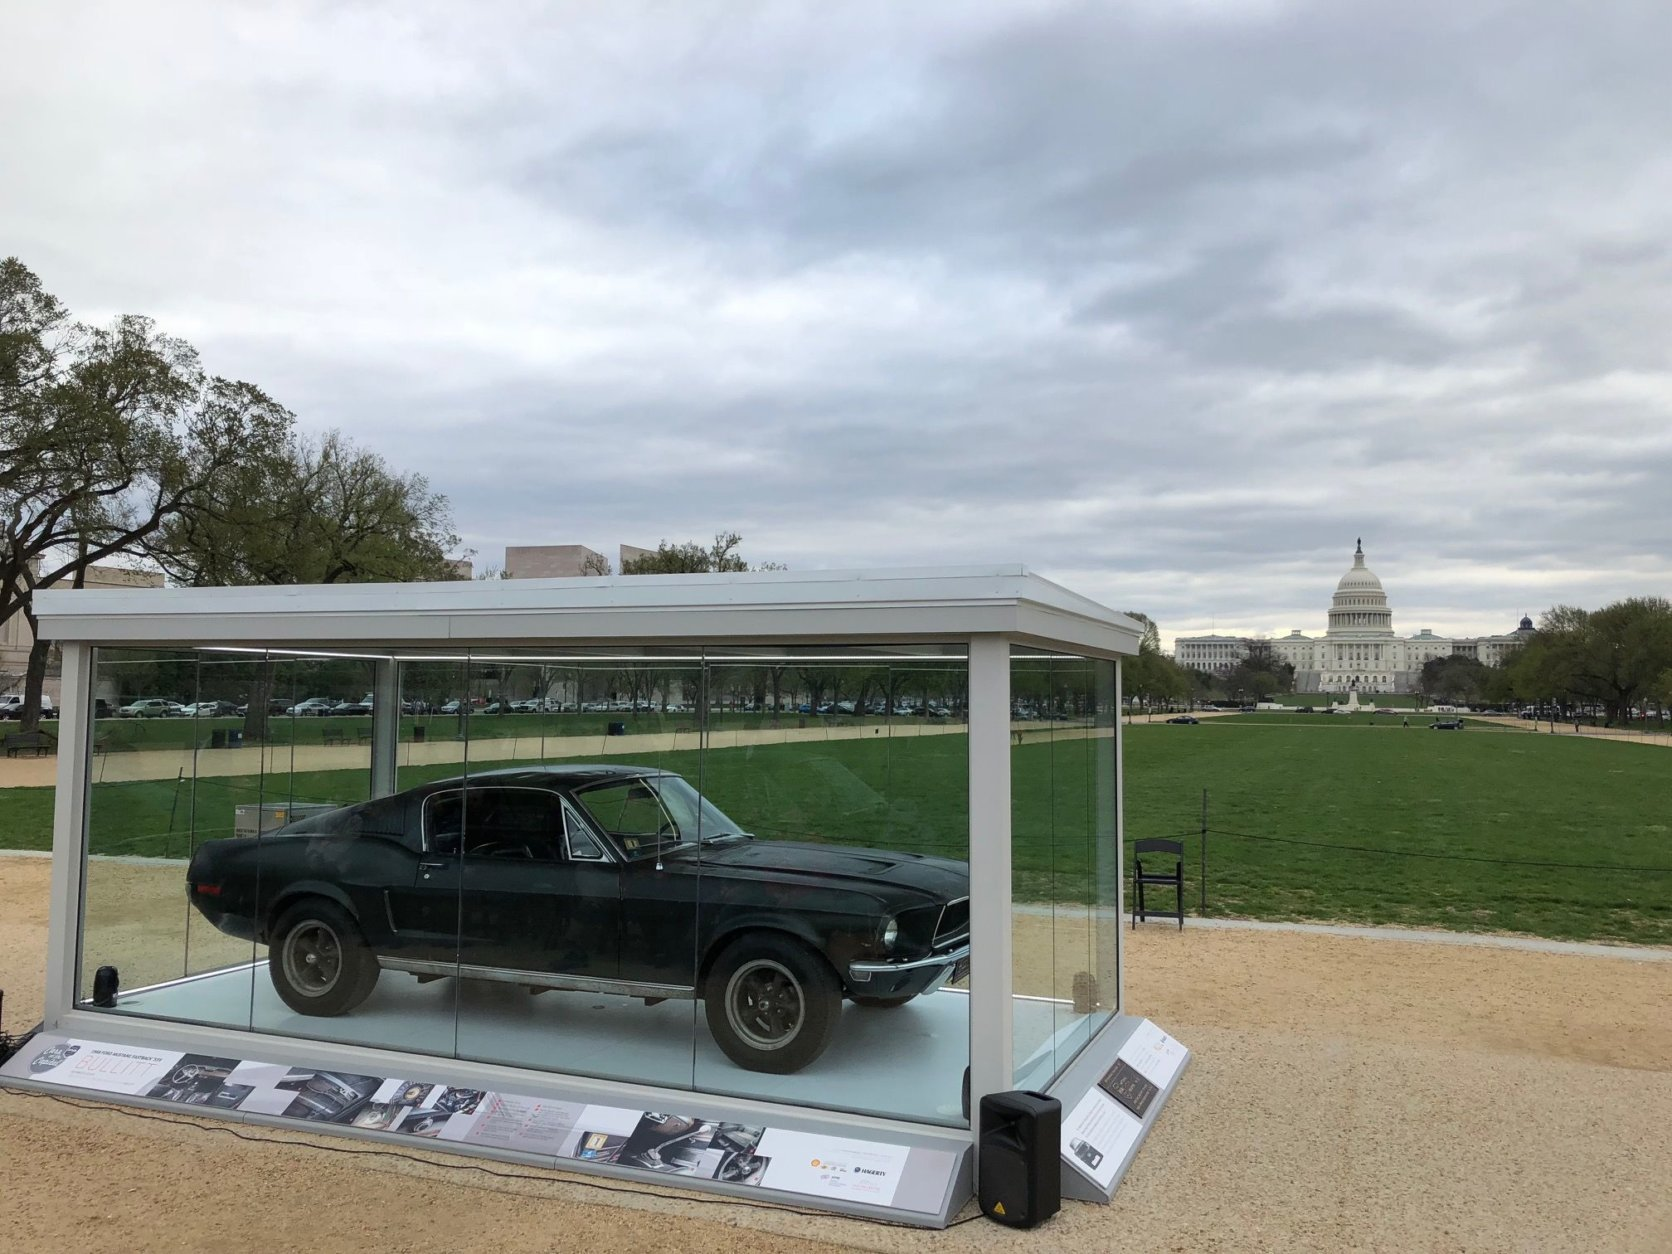 """""""The Mustang is one of the important cars of all time, and this is the most famous Mustang,"""" said Historic Vehicle Association President Mark Gessler. (WTOP/John Aaron)"""